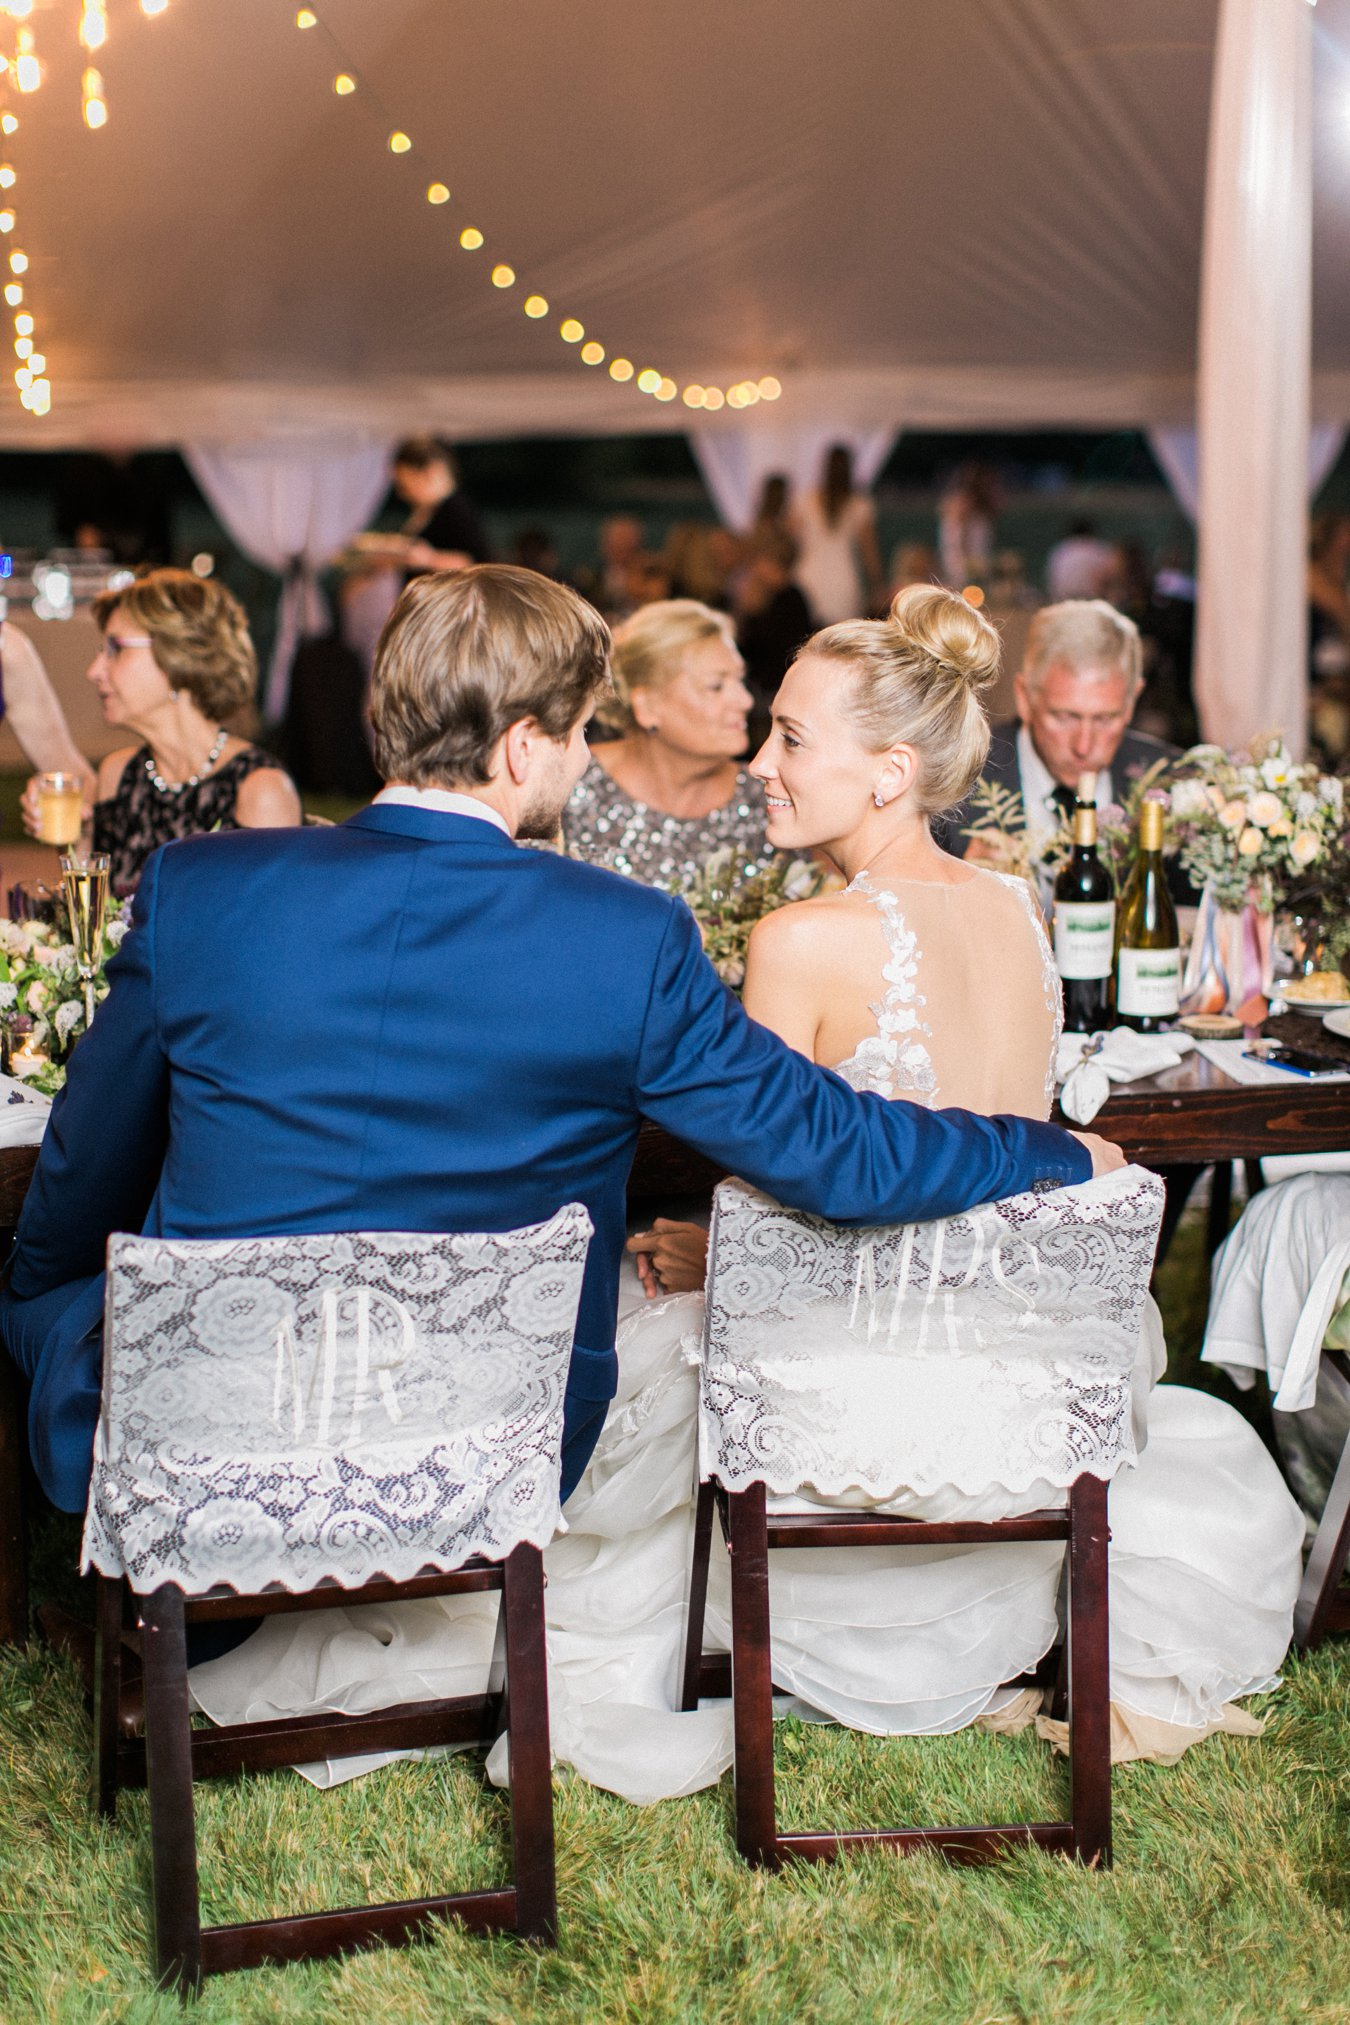 Lace Mr. and Mrs. Chair covers | Cory Weber Photography